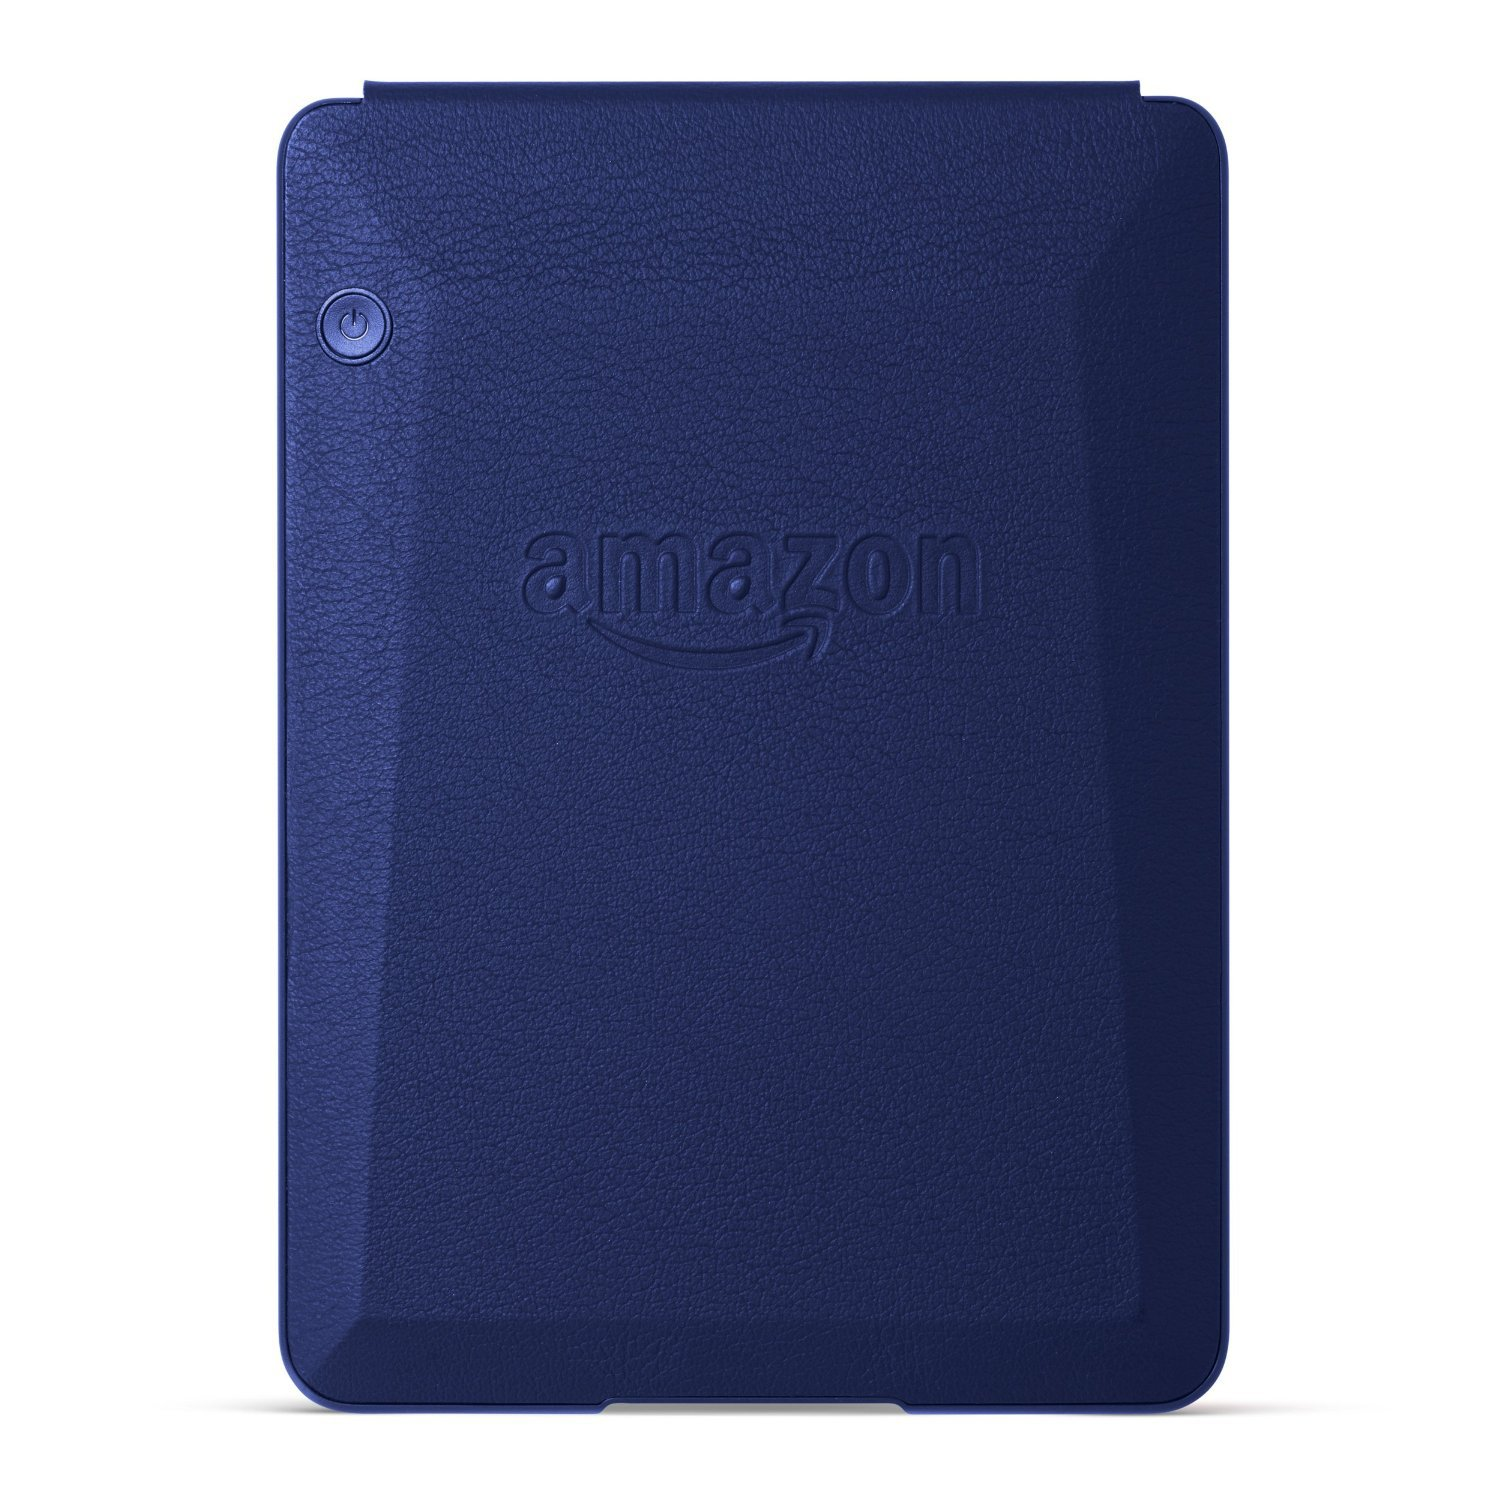 Чехол-обложка Amazon Protective Leather Cover для Kindle Voyage (синий). Фото N5